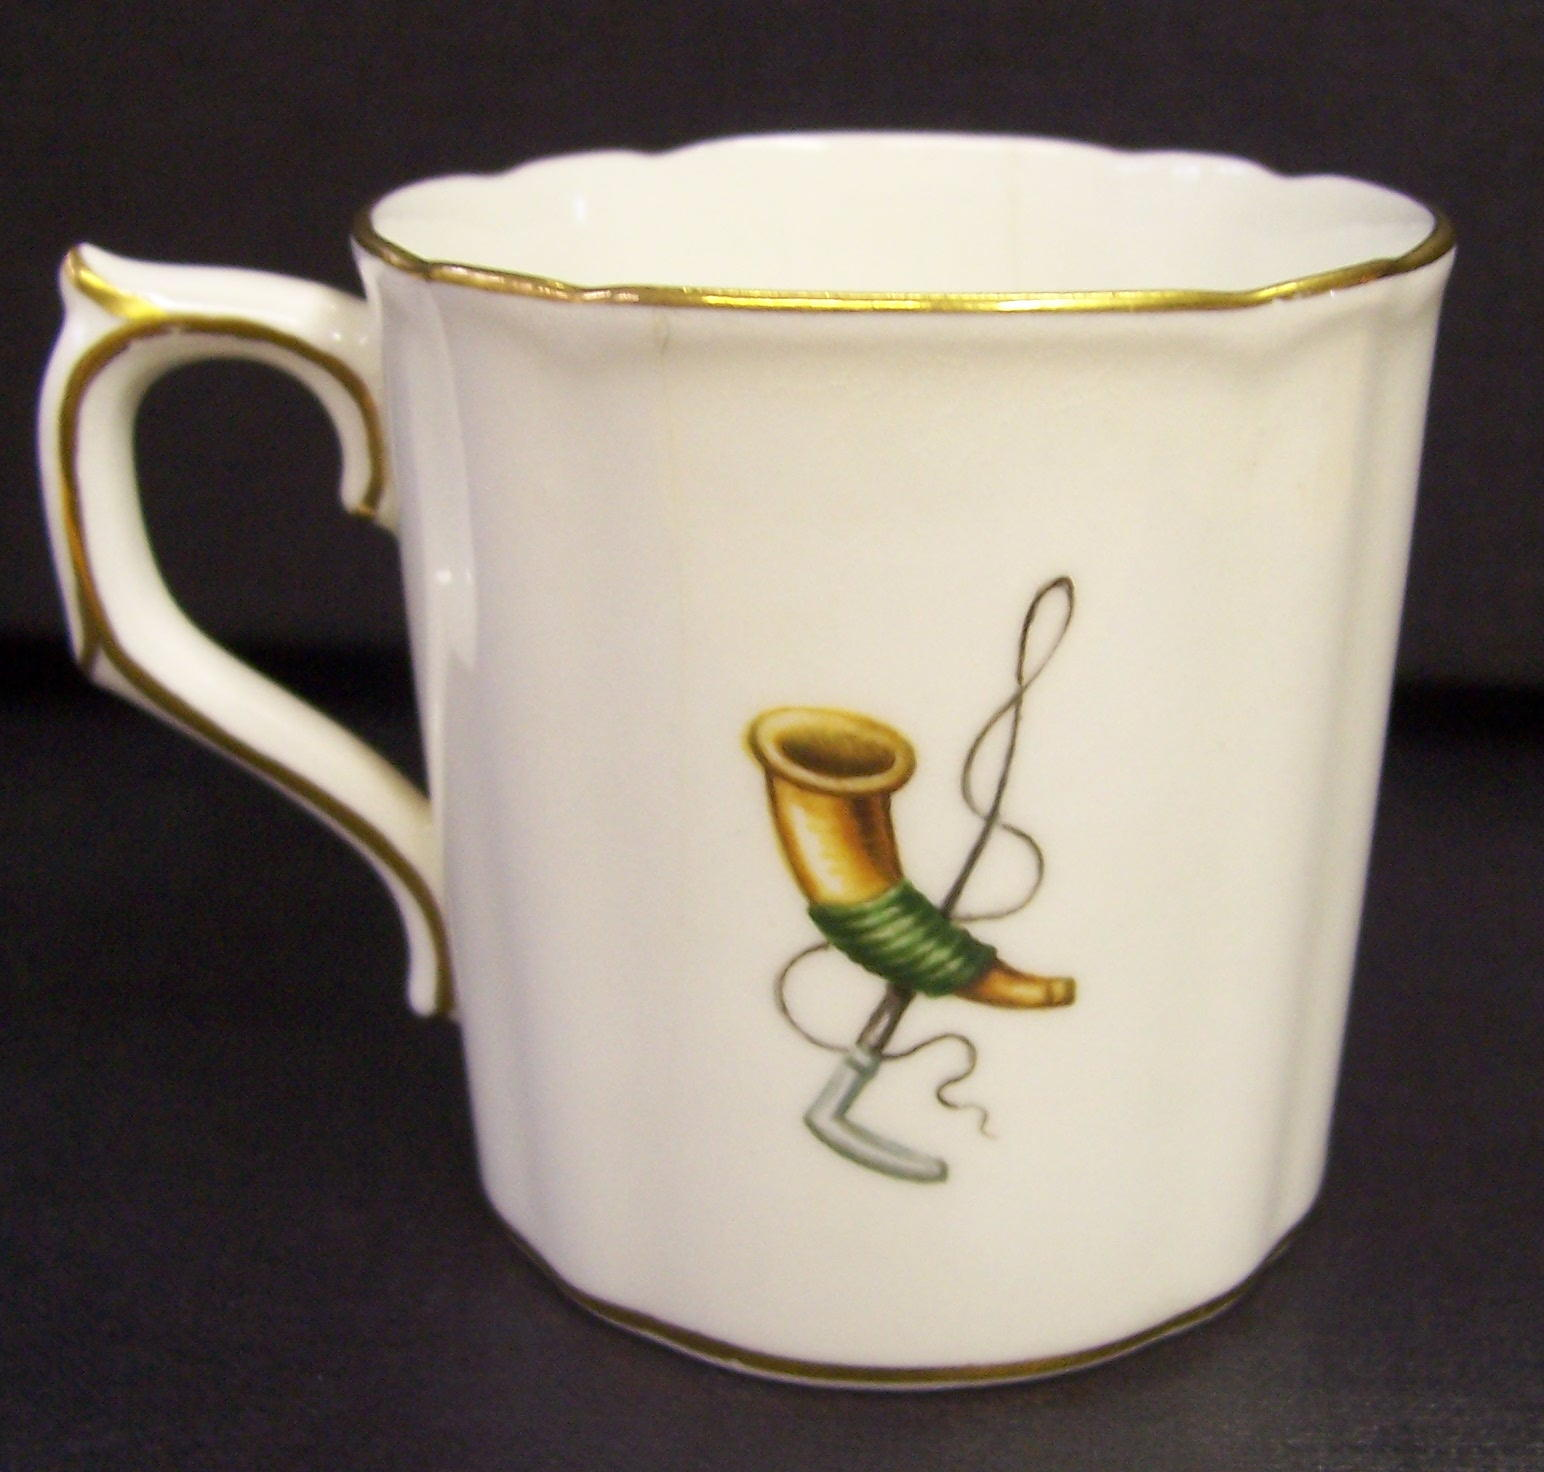 royal-crown-derby-chelsea-coffee-can-hunting-scene-h-pausch-reverse